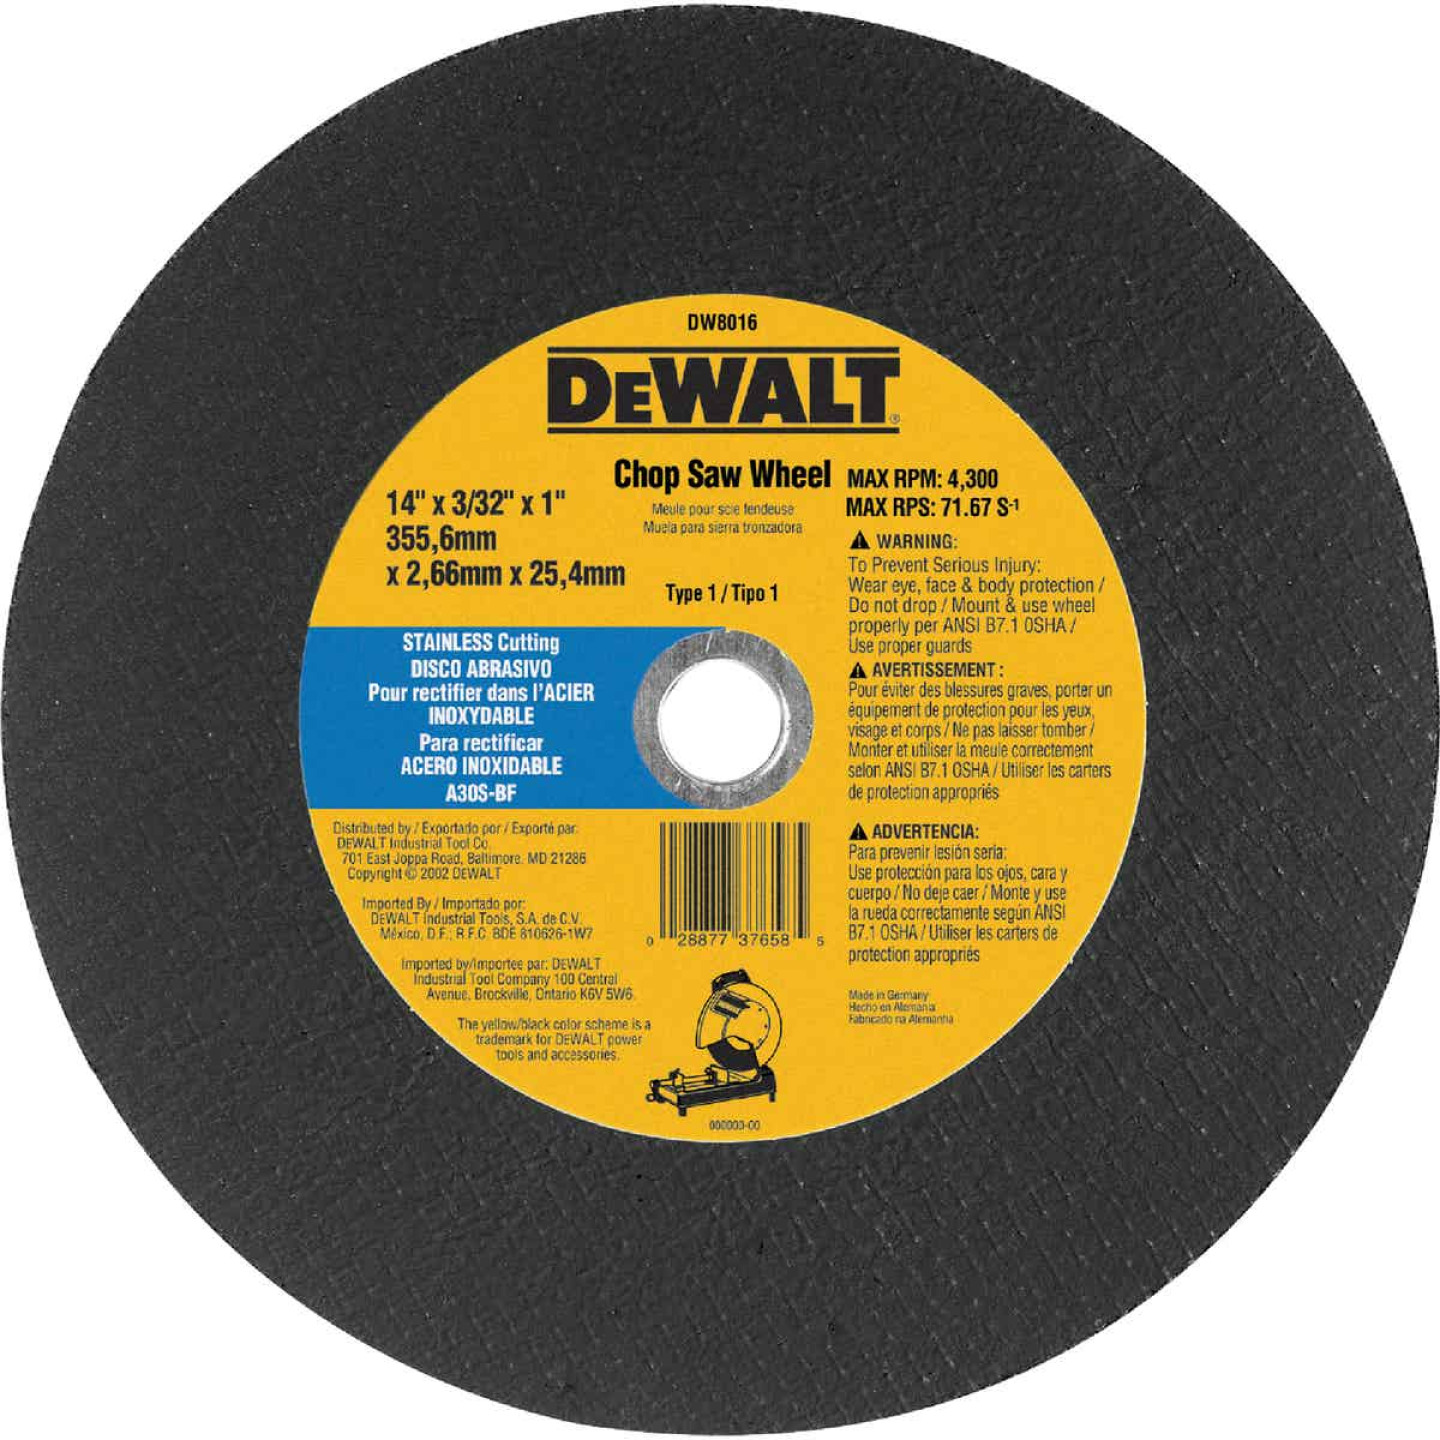 DeWalt HP Type 1 14 In. x 7/64 In. x 1 In. Stainless Steel Cut-Off Wheel Image 1